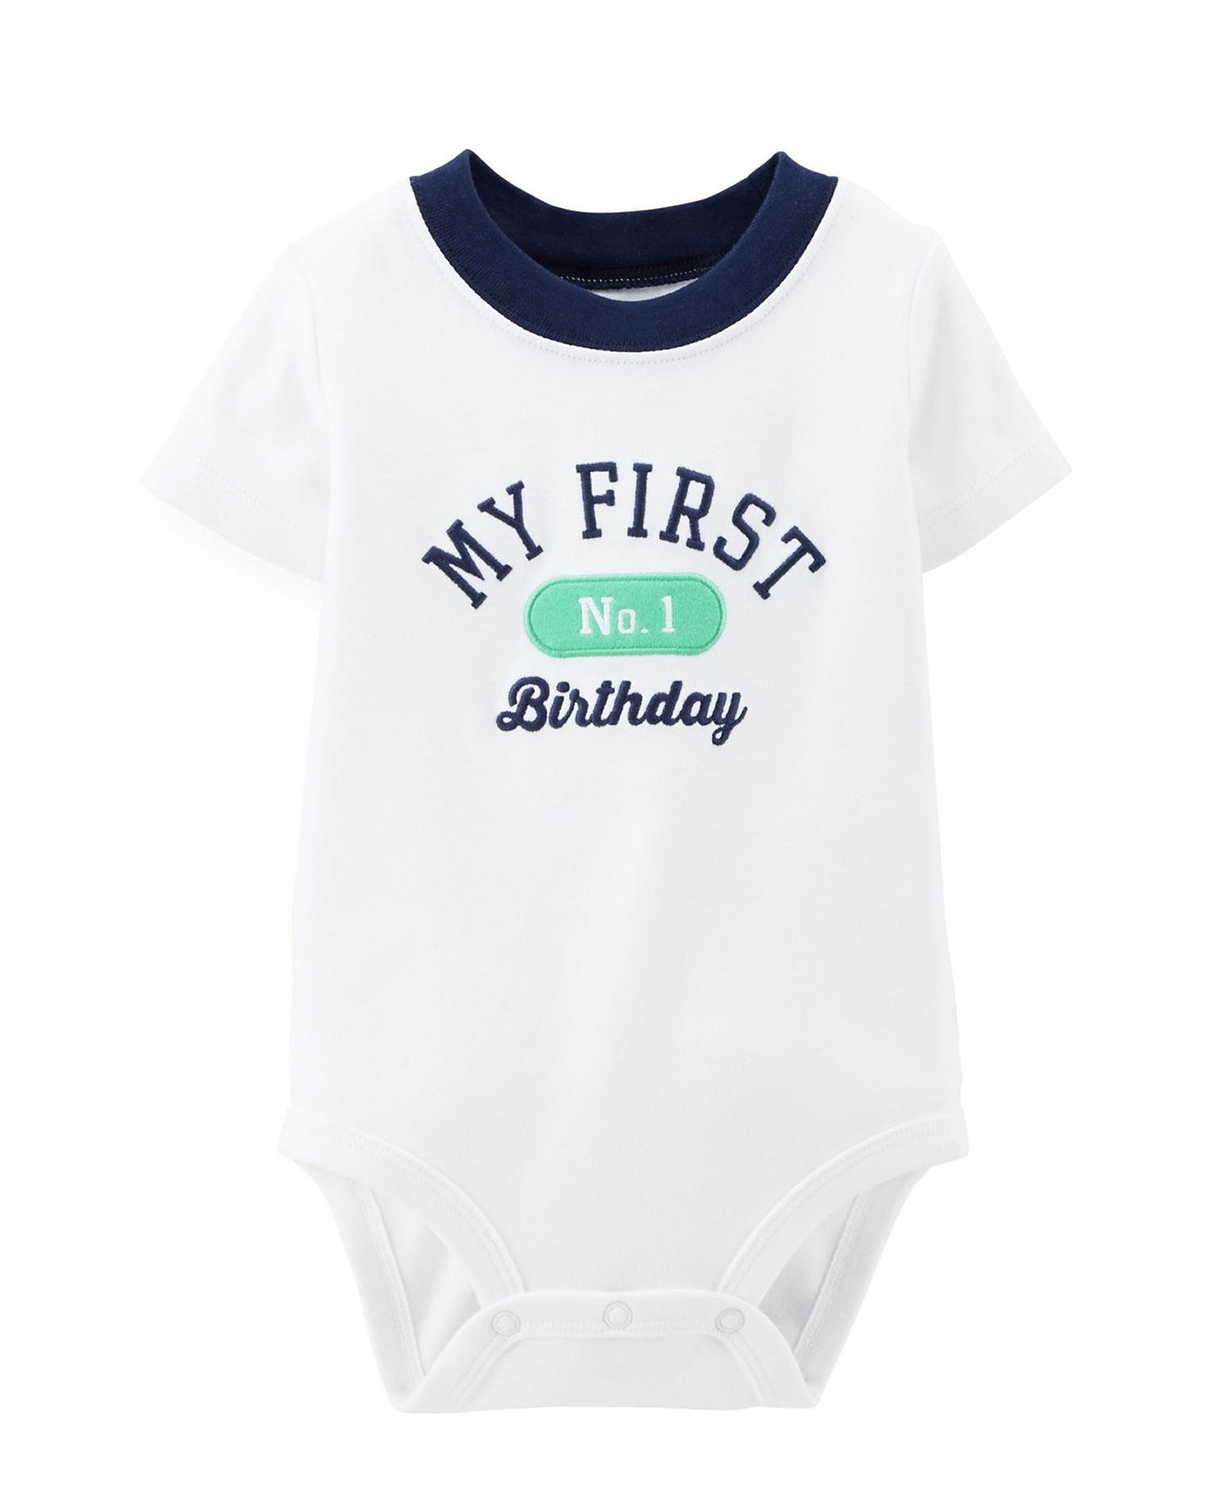 Cute Carter S Baby Boys Birthday Bodysuit Baby Baby Boy First Birthday Outfit Baby Clothes Baby Clothing Baby Boy Clothes Baby Girl Clothes Cheap Name Brand Clothes For Kids Toddler Name Brand